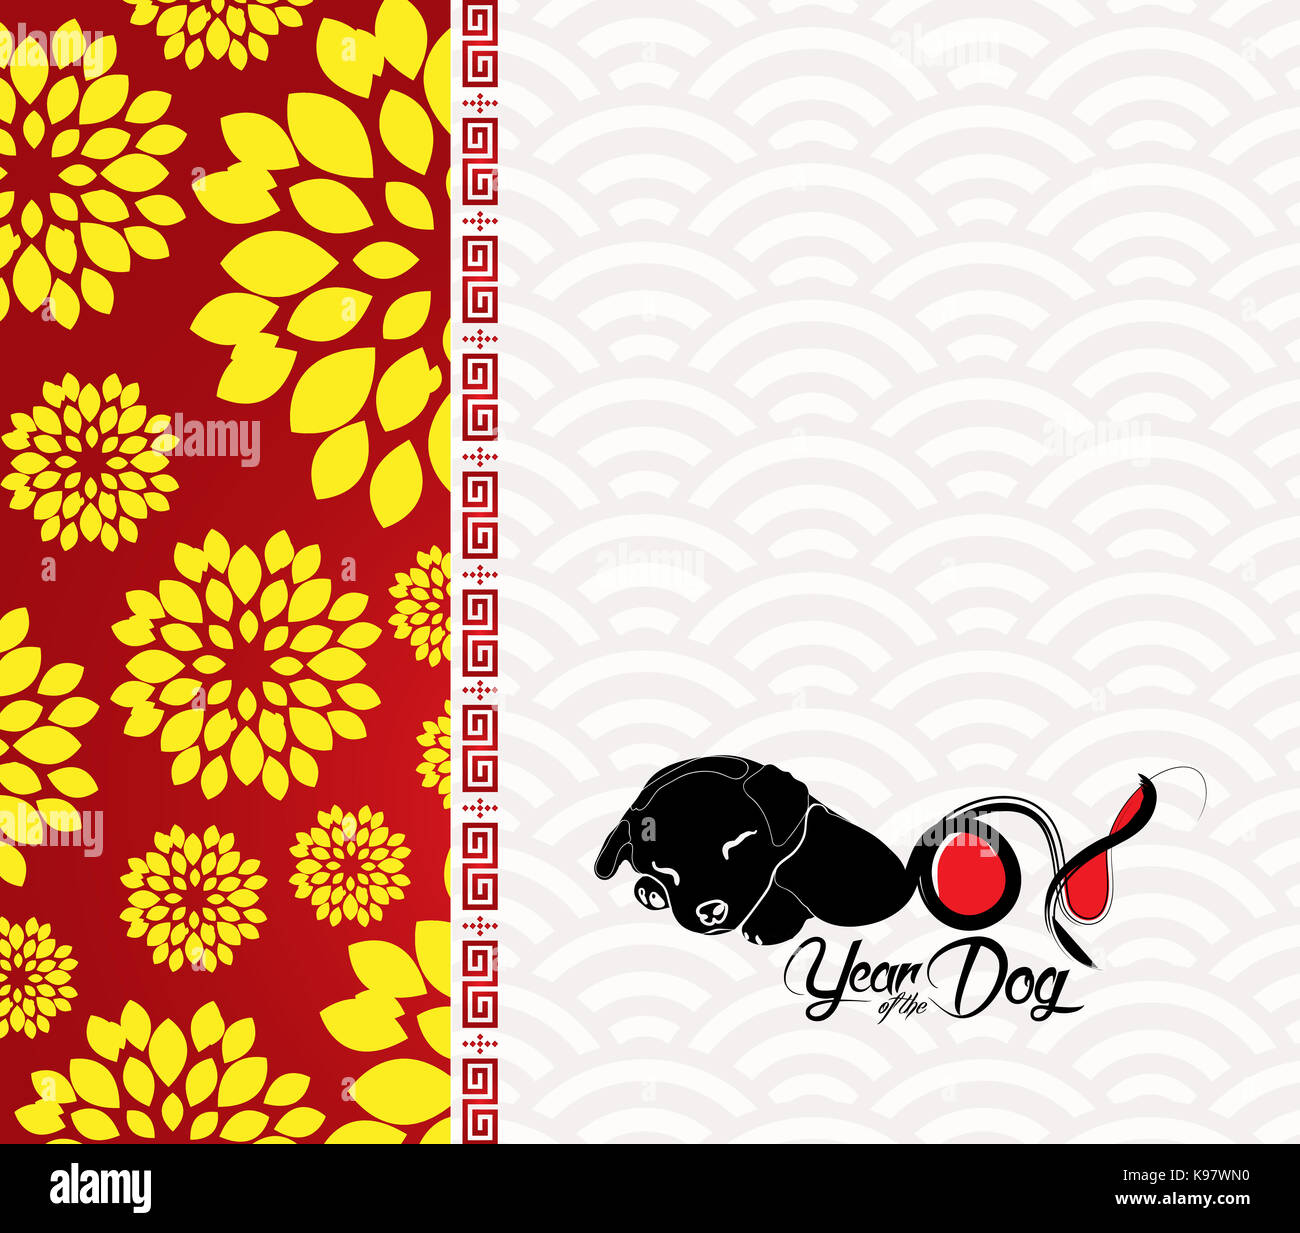 chinese new year 2018 plum blossom and dog background